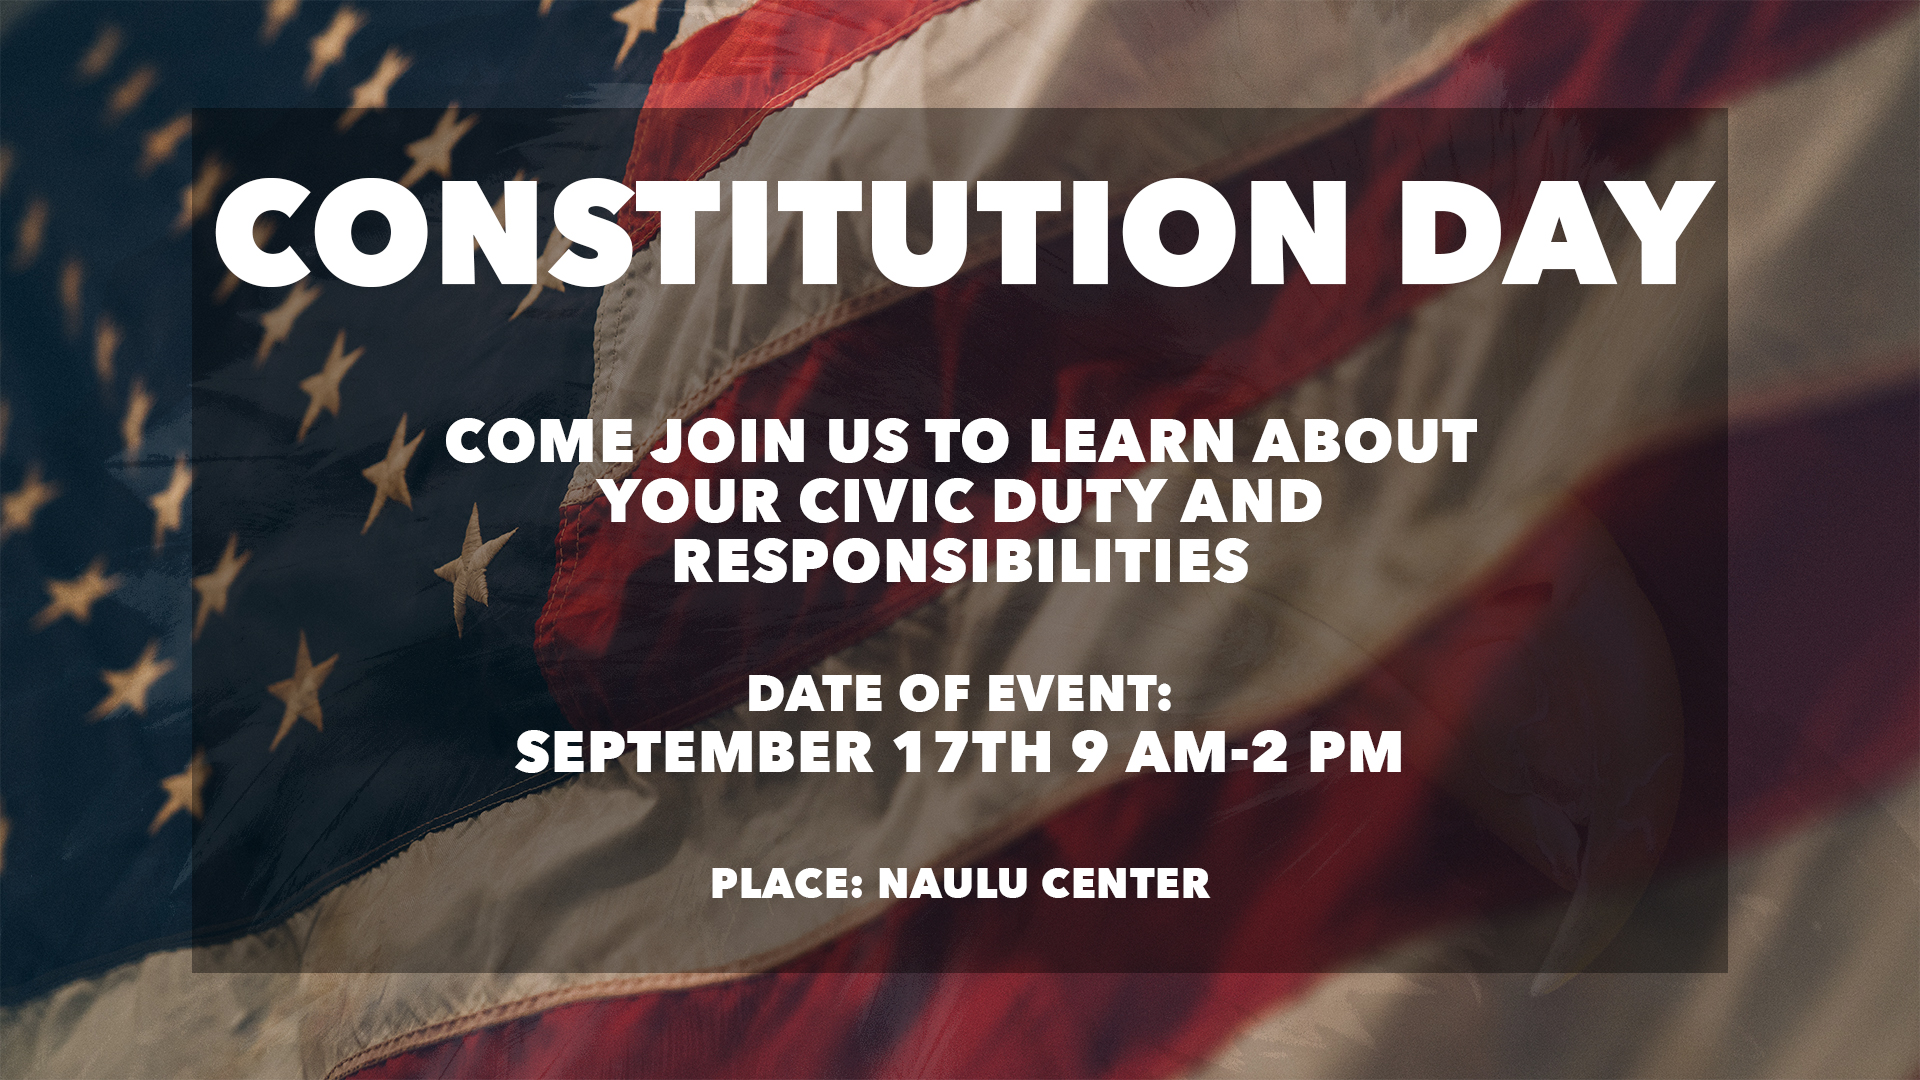 Constitution Day flyer for the event on September 17, 2019, 9 a.m to 2 p.m., at the Naulu Center